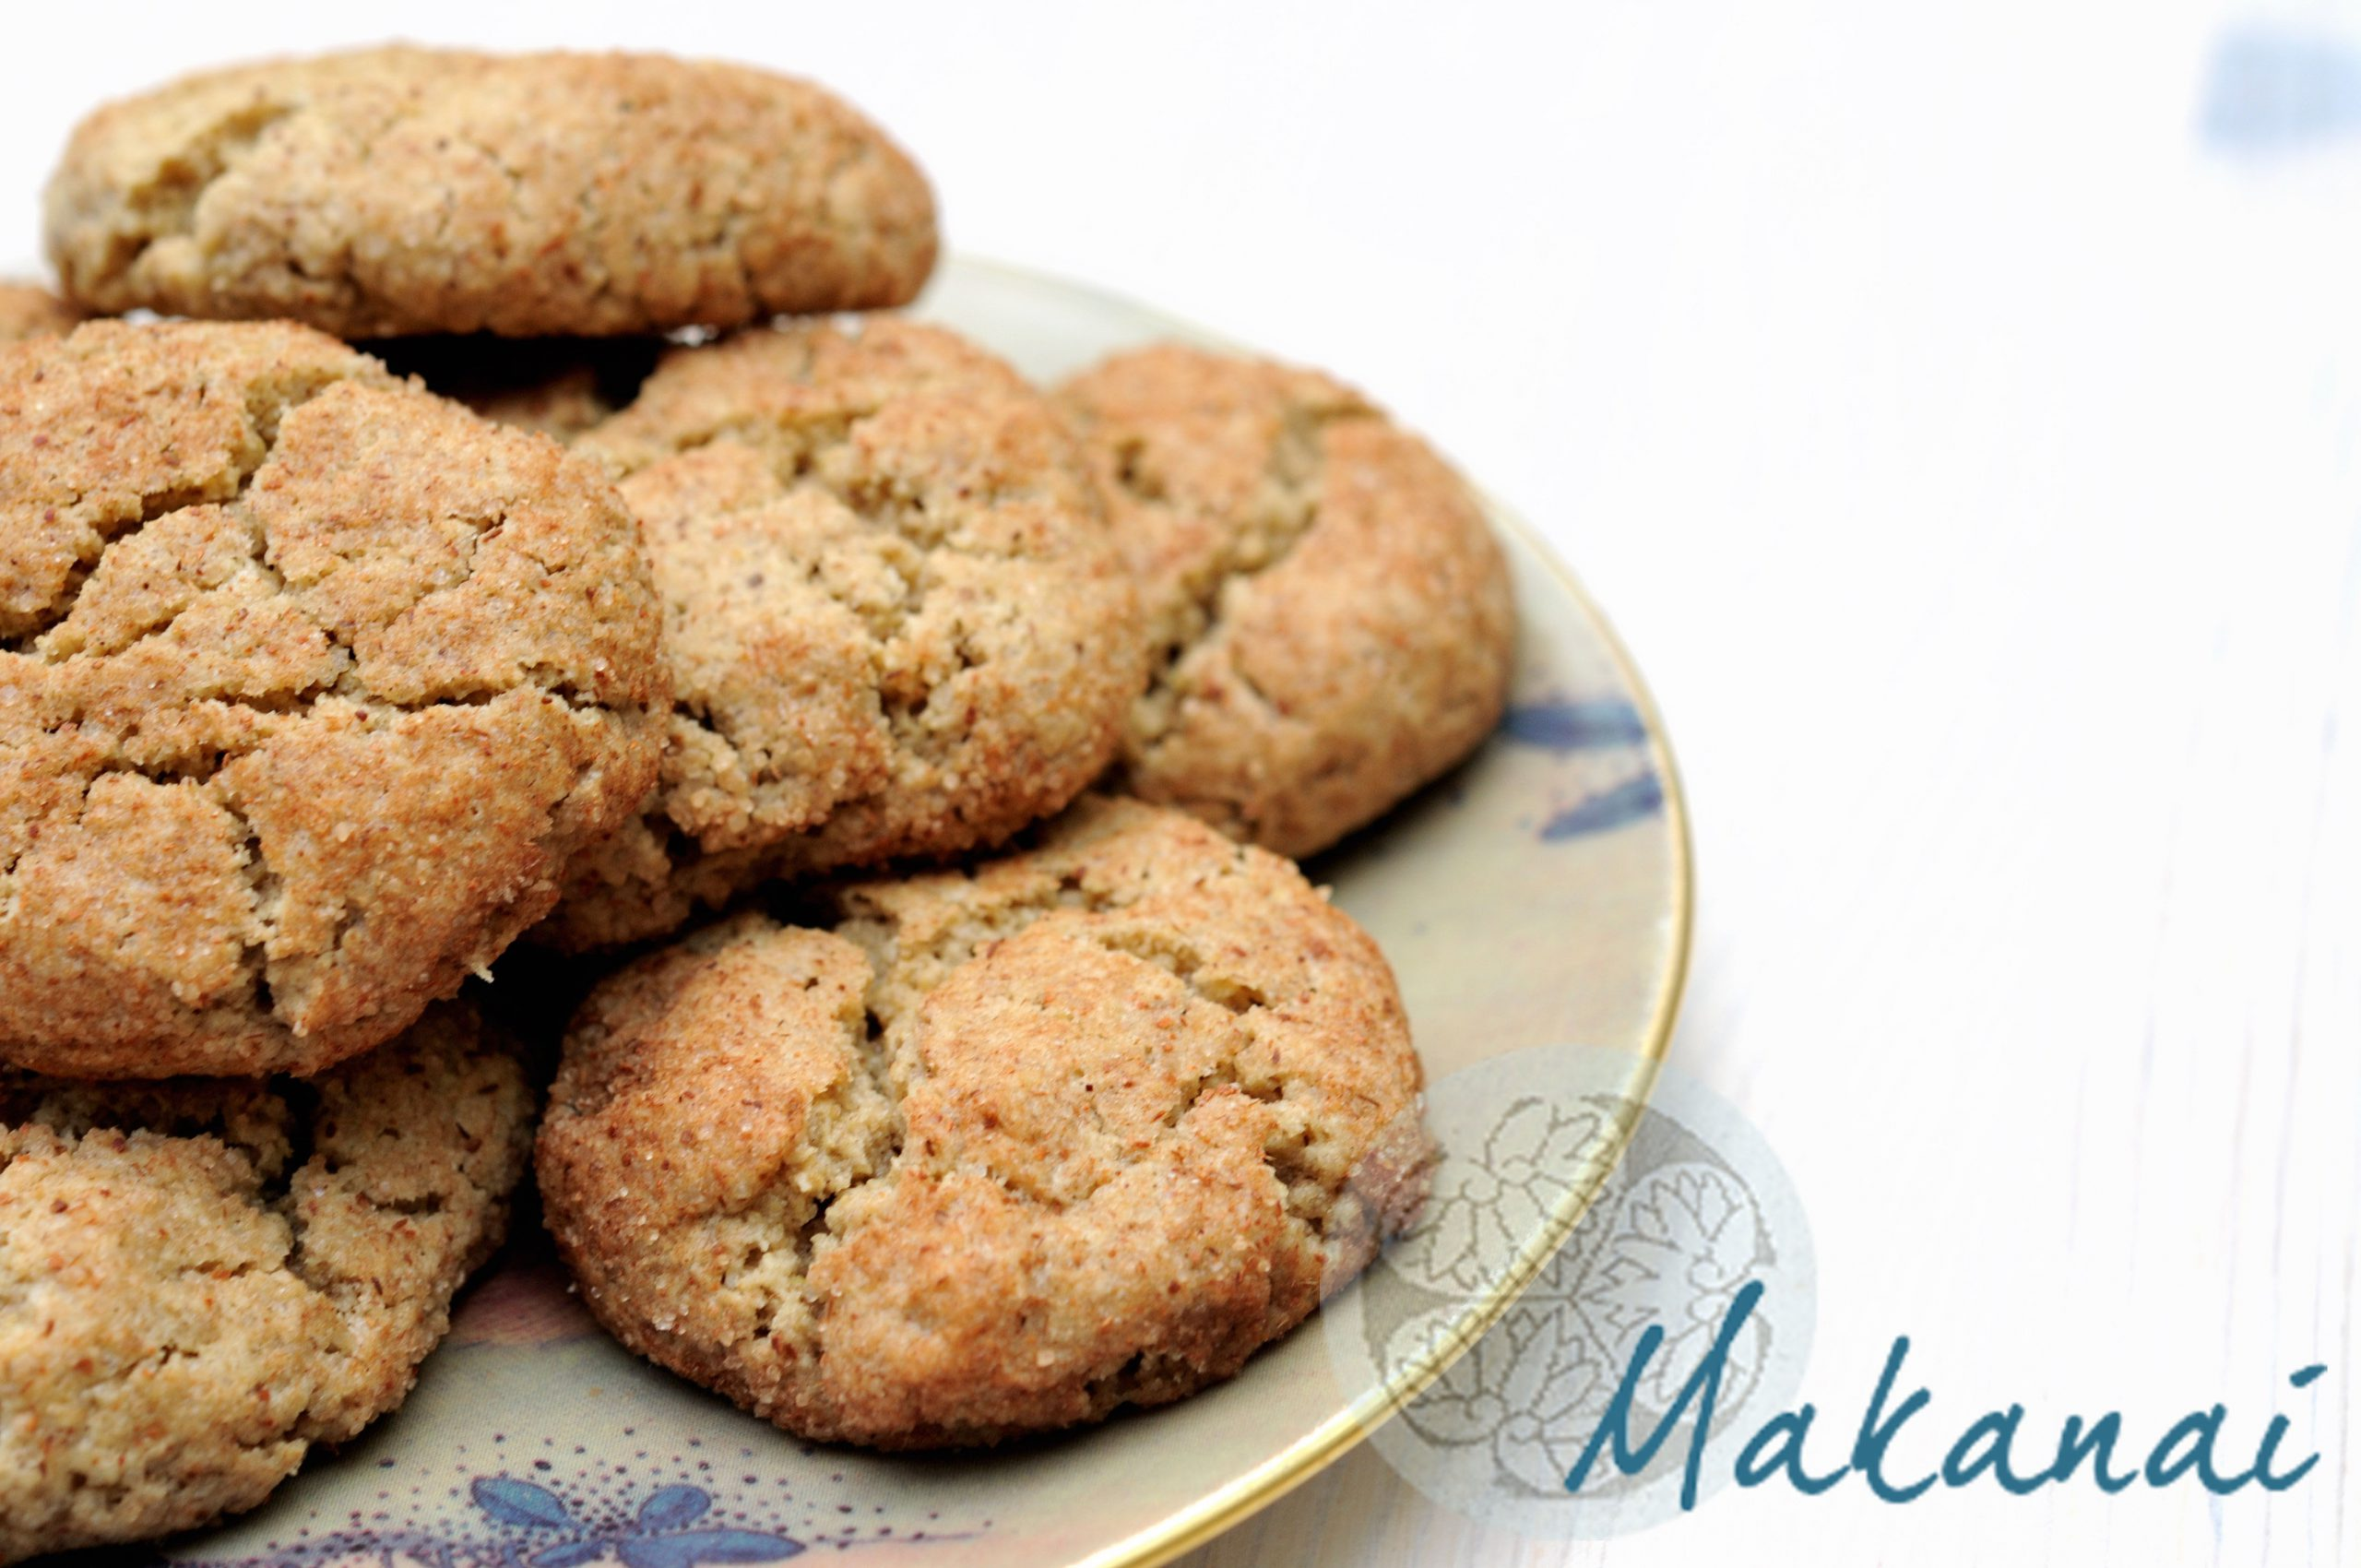 Snickerdoodles cookies la canelle makanaimakanai - Recette biscuit sans sucre ...